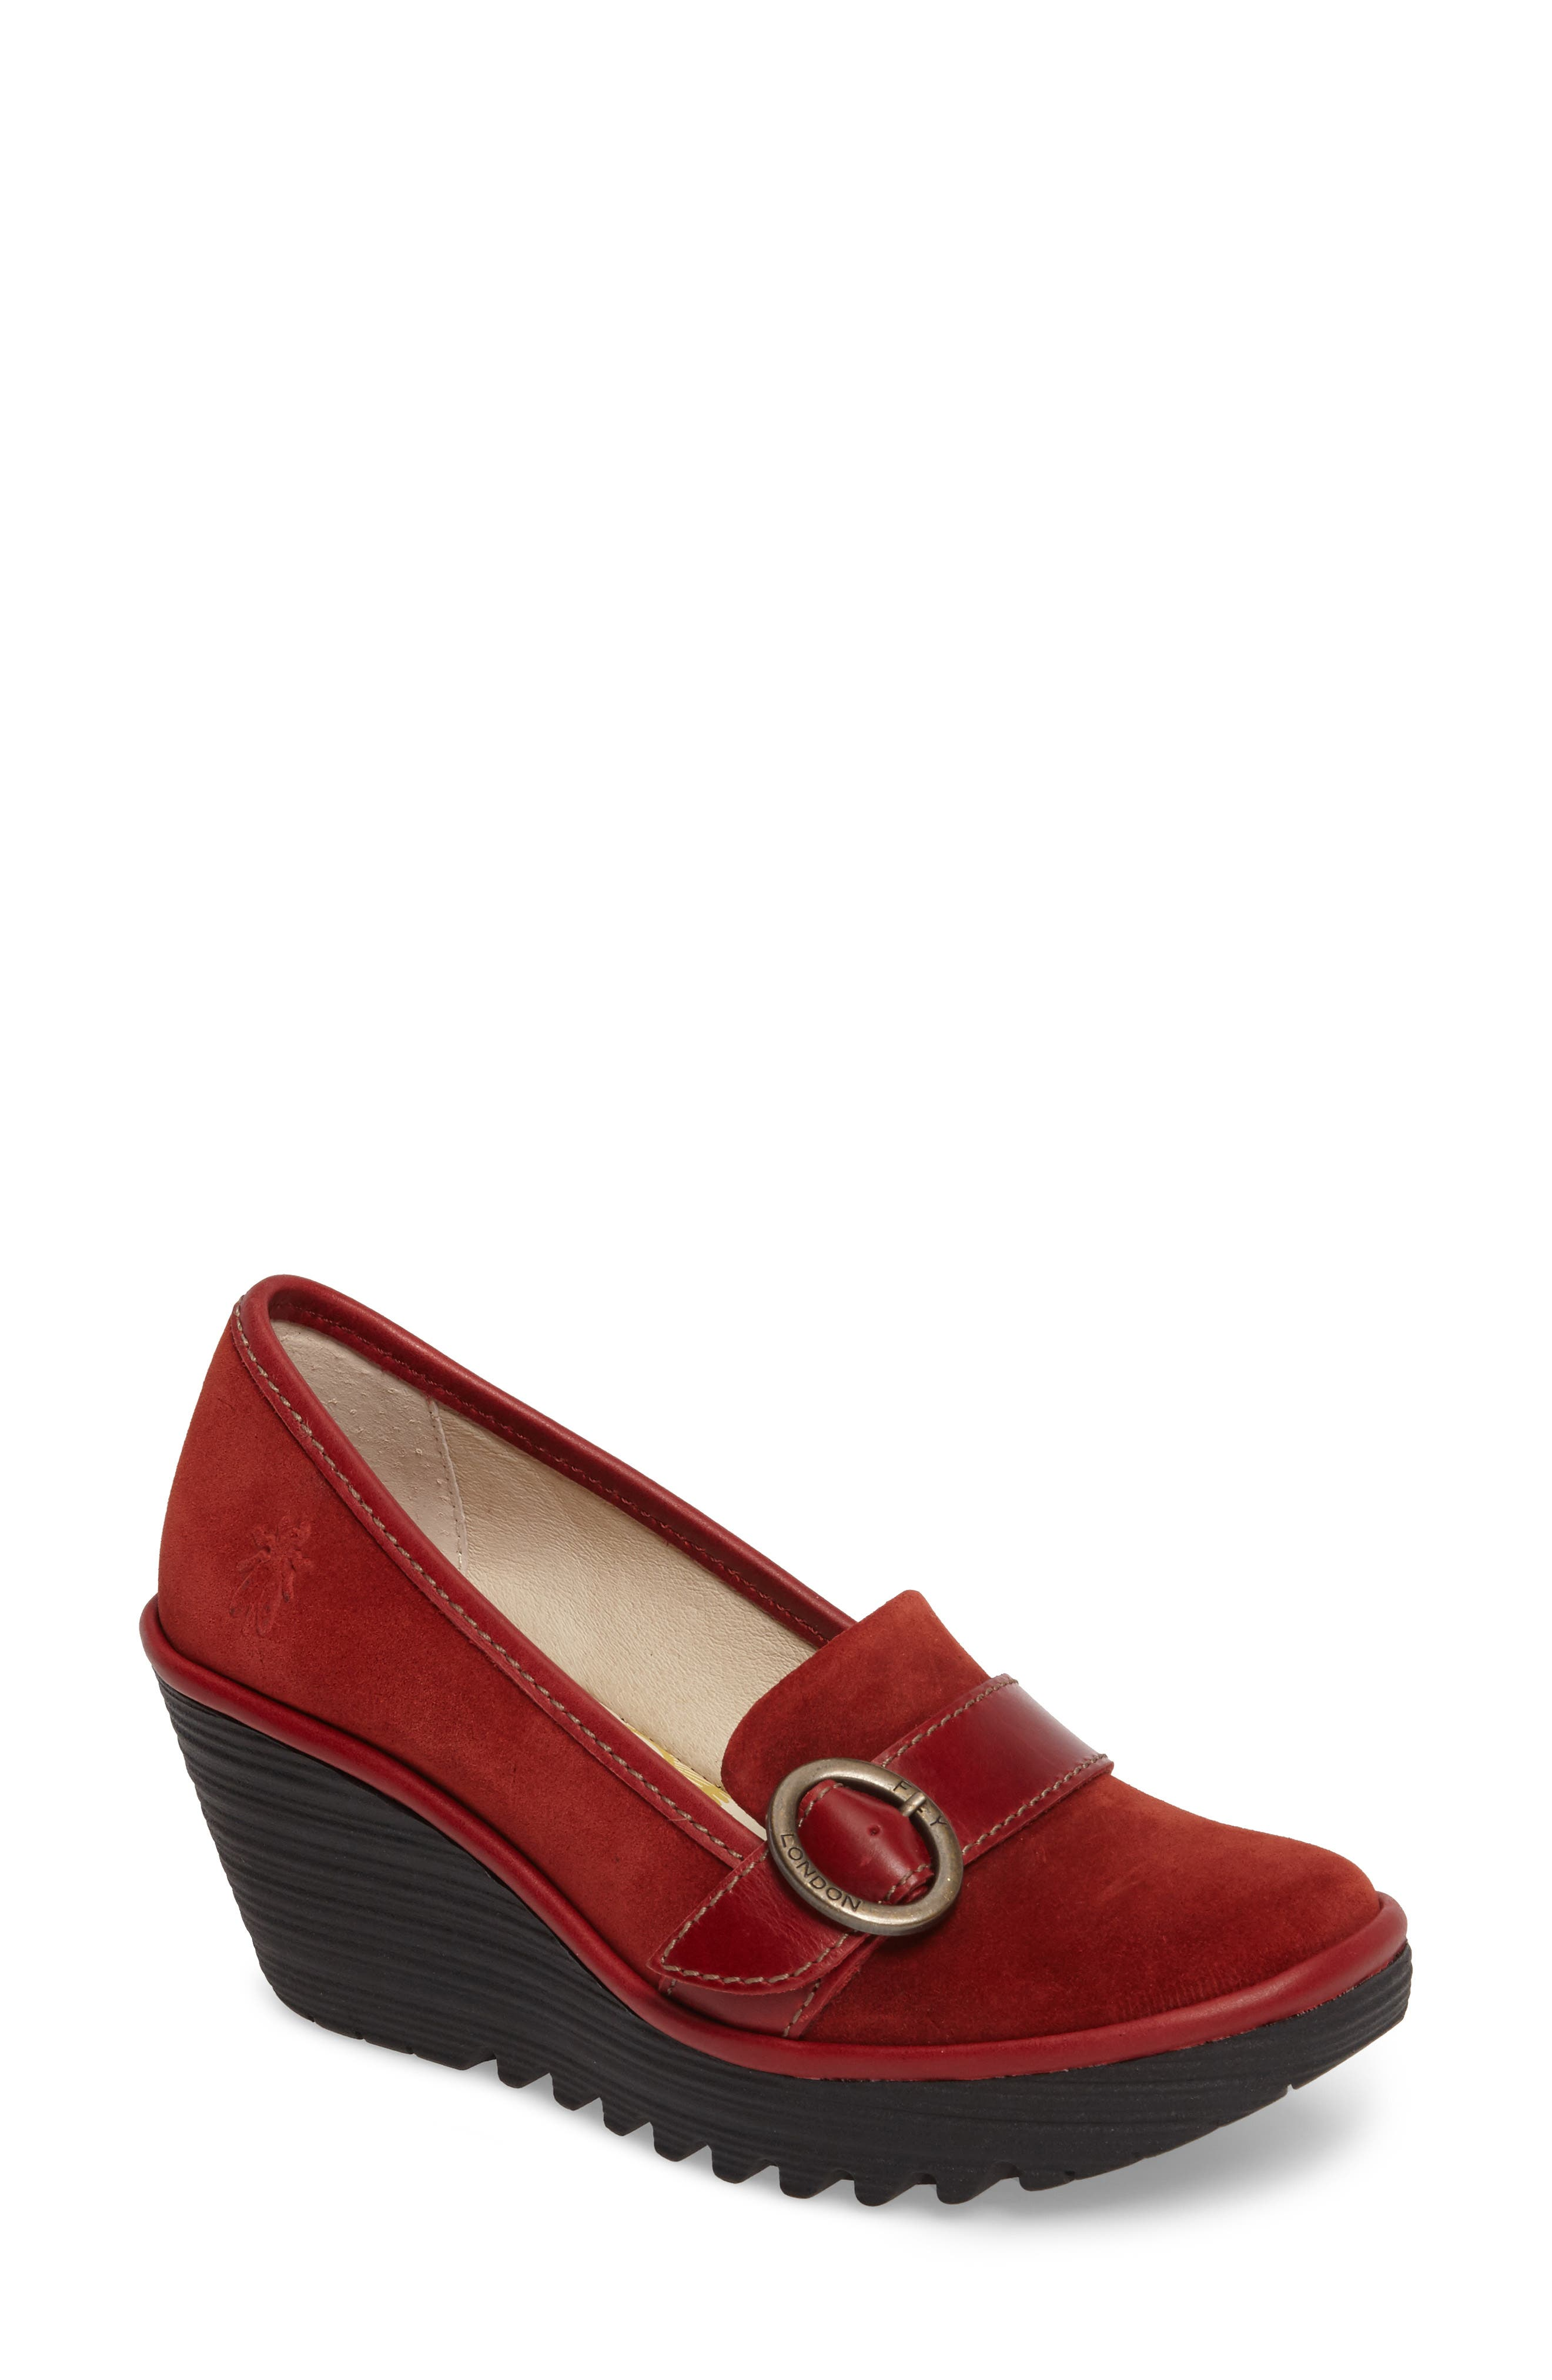 Alternate Image 1 Selected - Fly London Yond Wedge (Women)